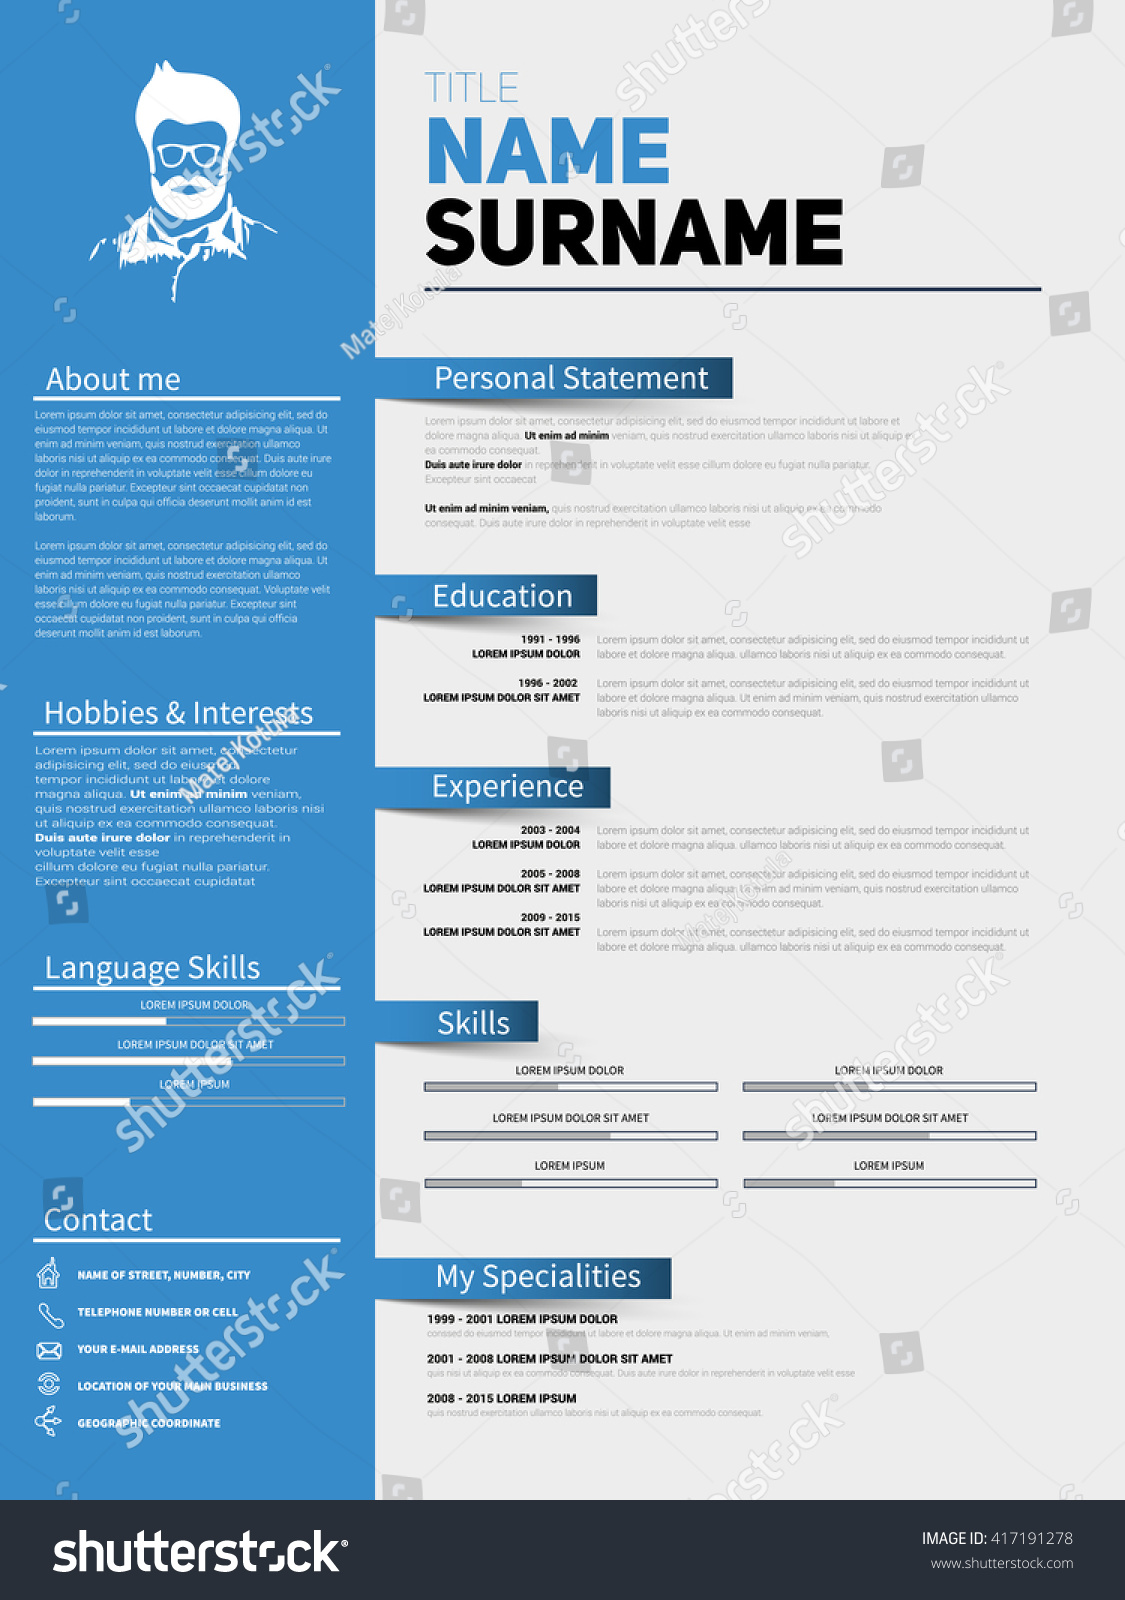 the applicant resume cv html template